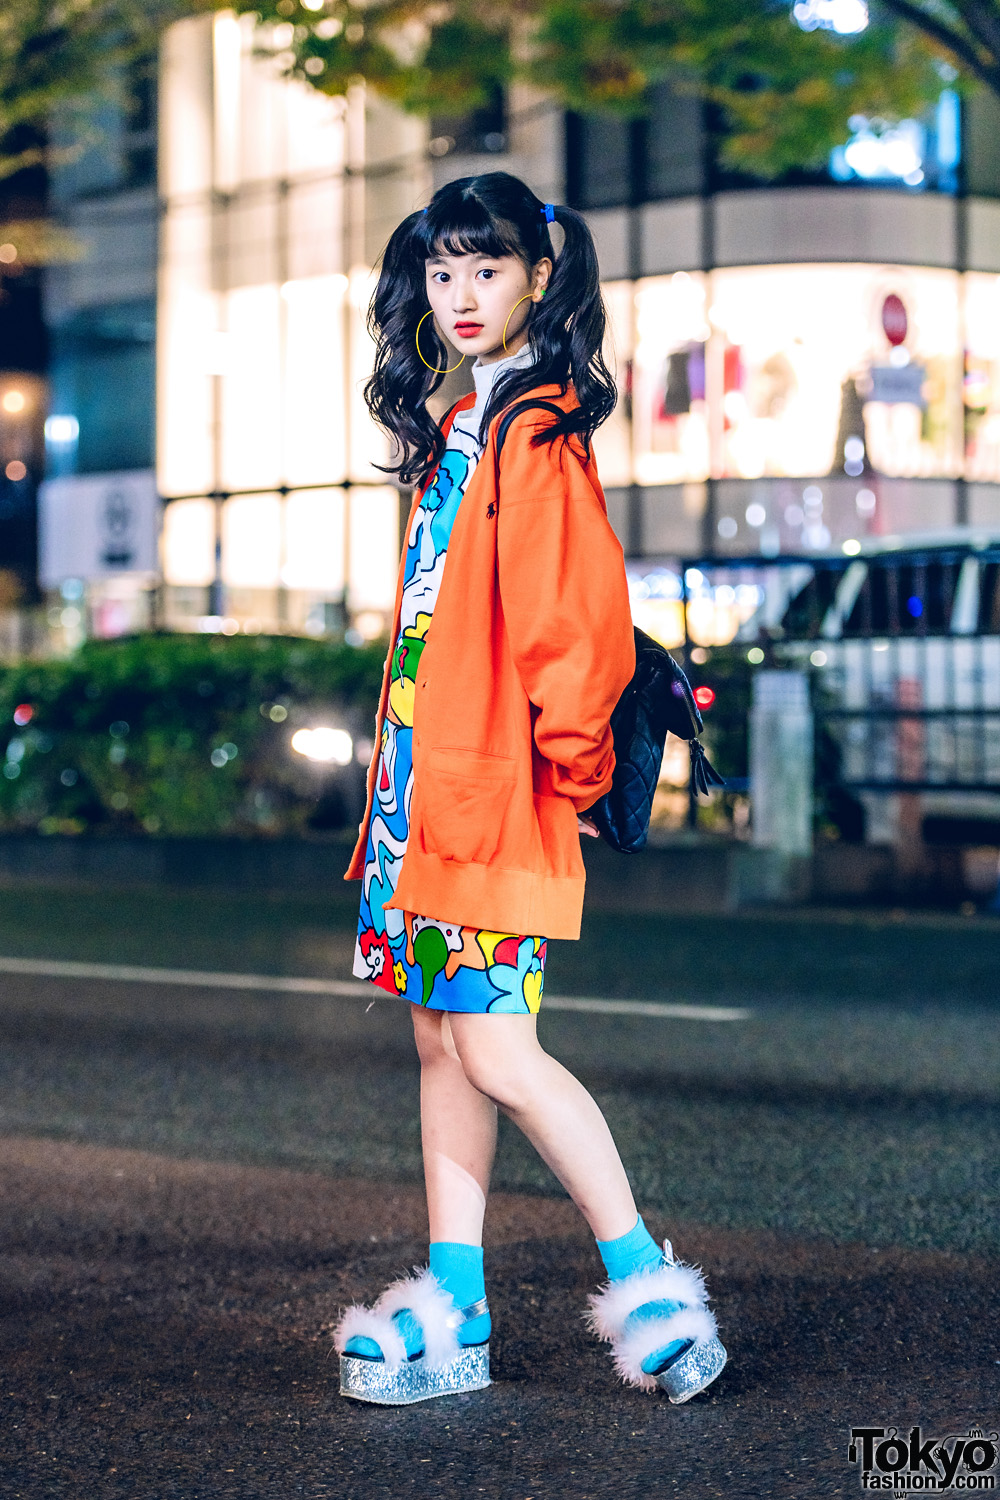 Japanese Model in Harajuku w/ Curly Twin Tails, Ralph Lauren Cardigan, Vintage Dress, WEGO Fuzzy Platform Sandals & Quilted Backpack